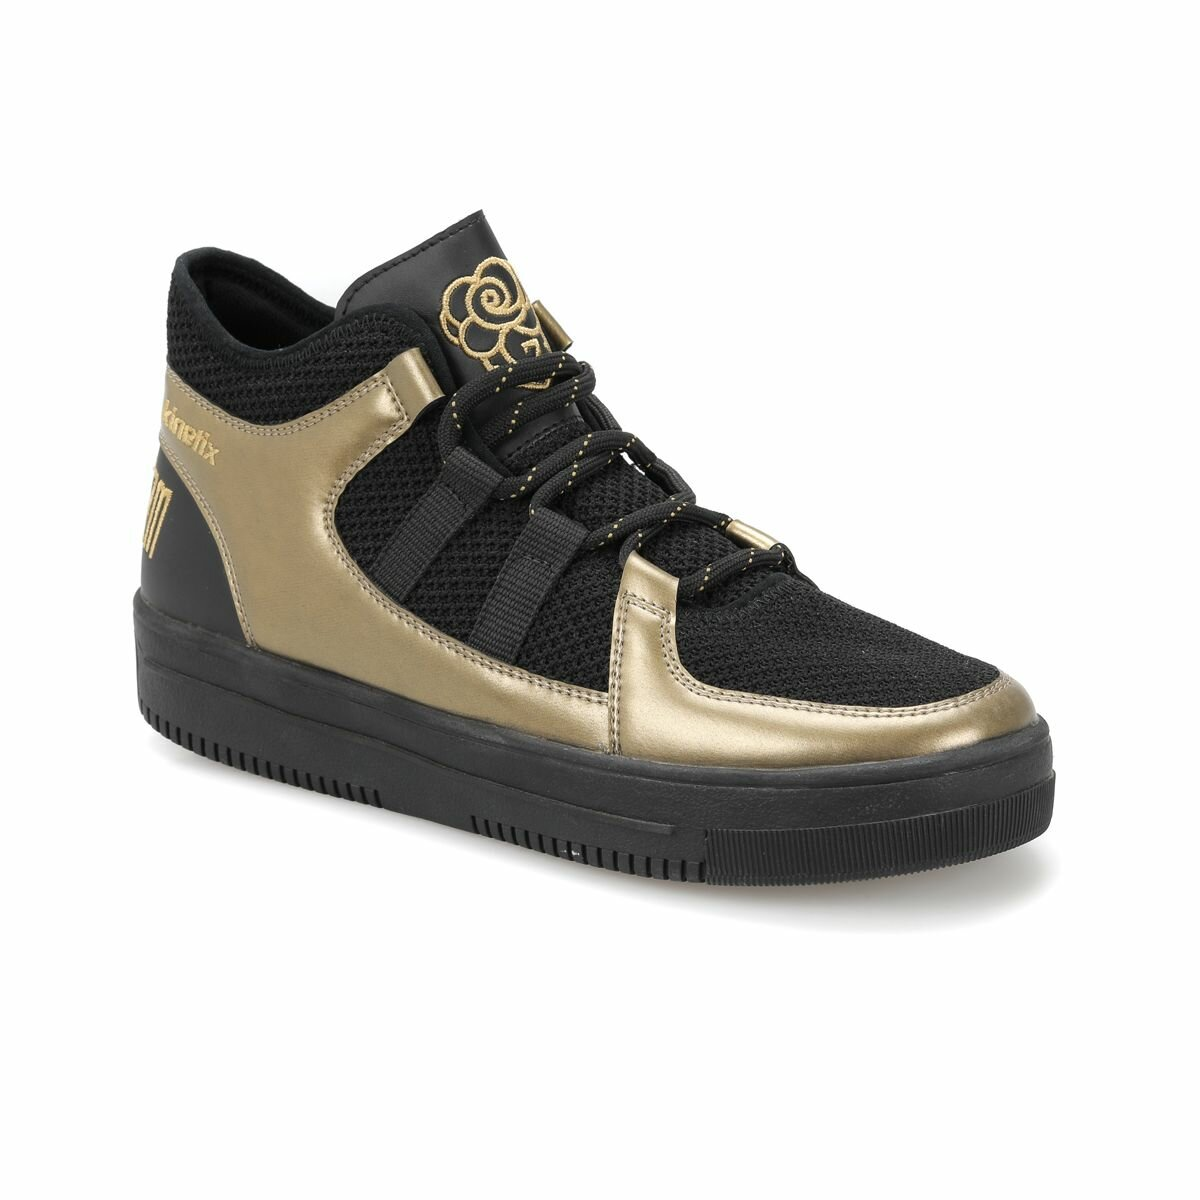 FLO GAZAPIZM Black Men 'S Sneaker Shoes KINETIX